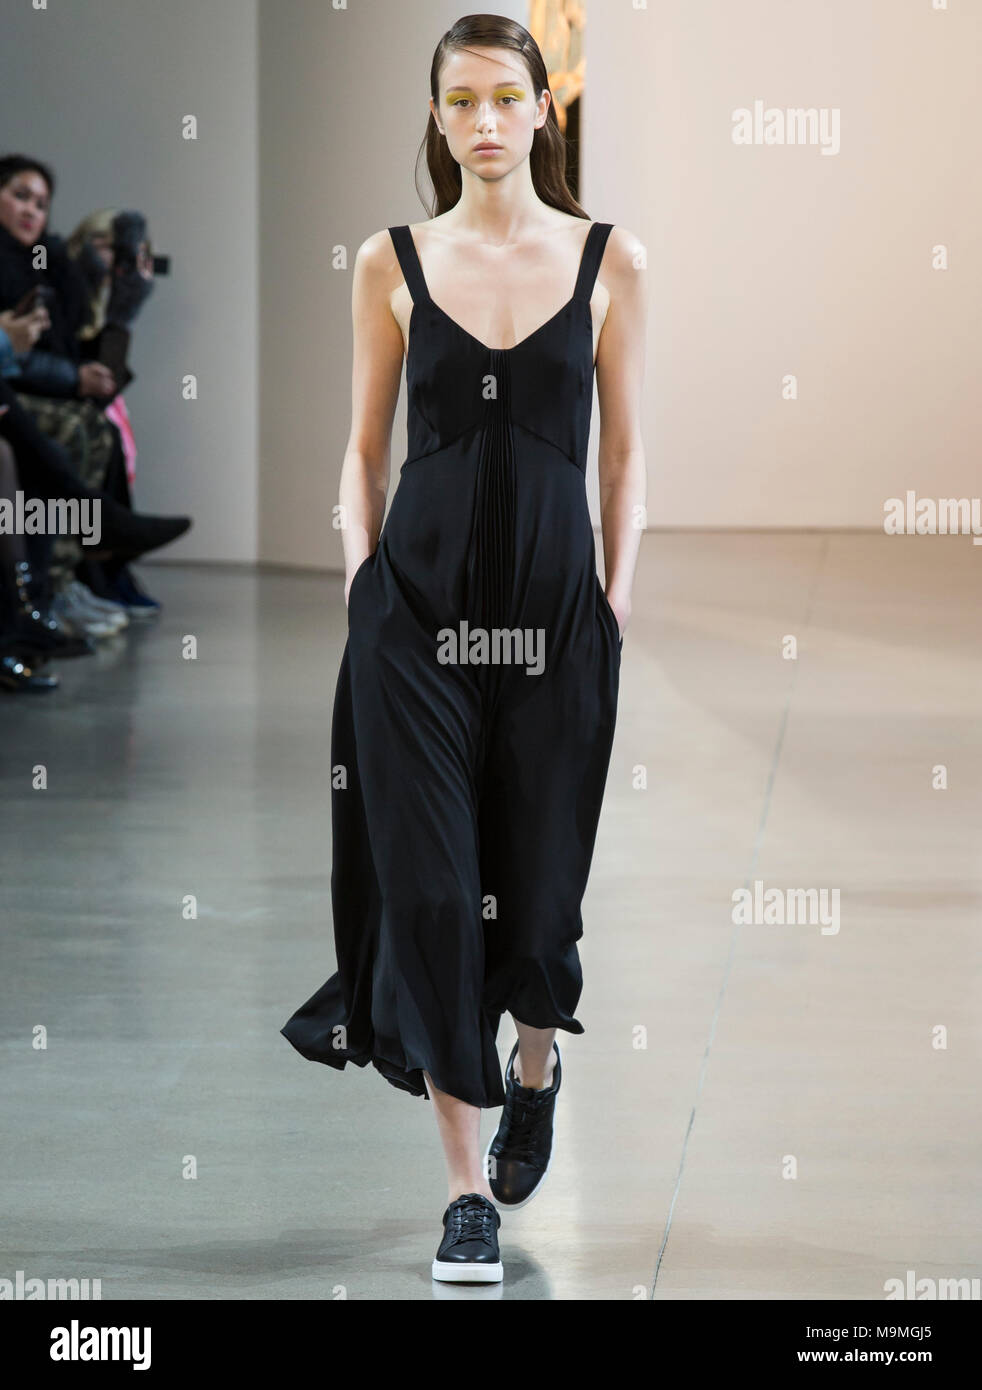 NEW YORK, NY - February 08, 2018: Soso Korell walks the runway at the Noon by Noor Fall Winter 2018 fashion show during New York Fashion Week - Stock Image